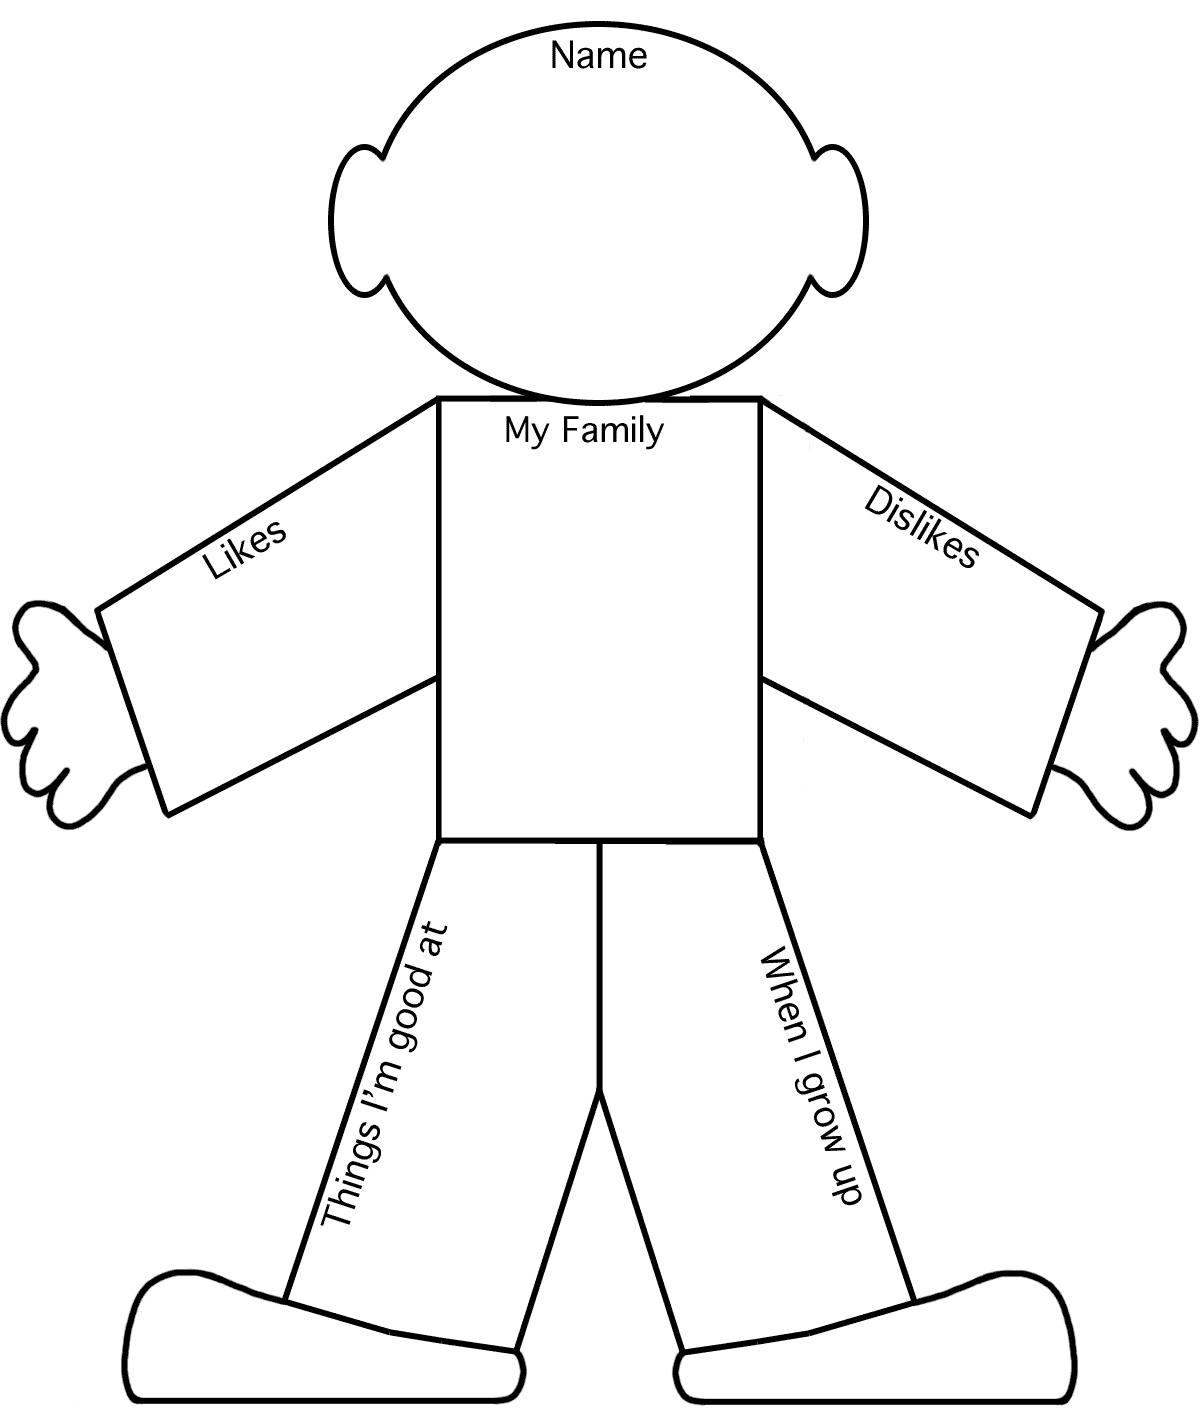 All about me graphic organizer. I have also used this one